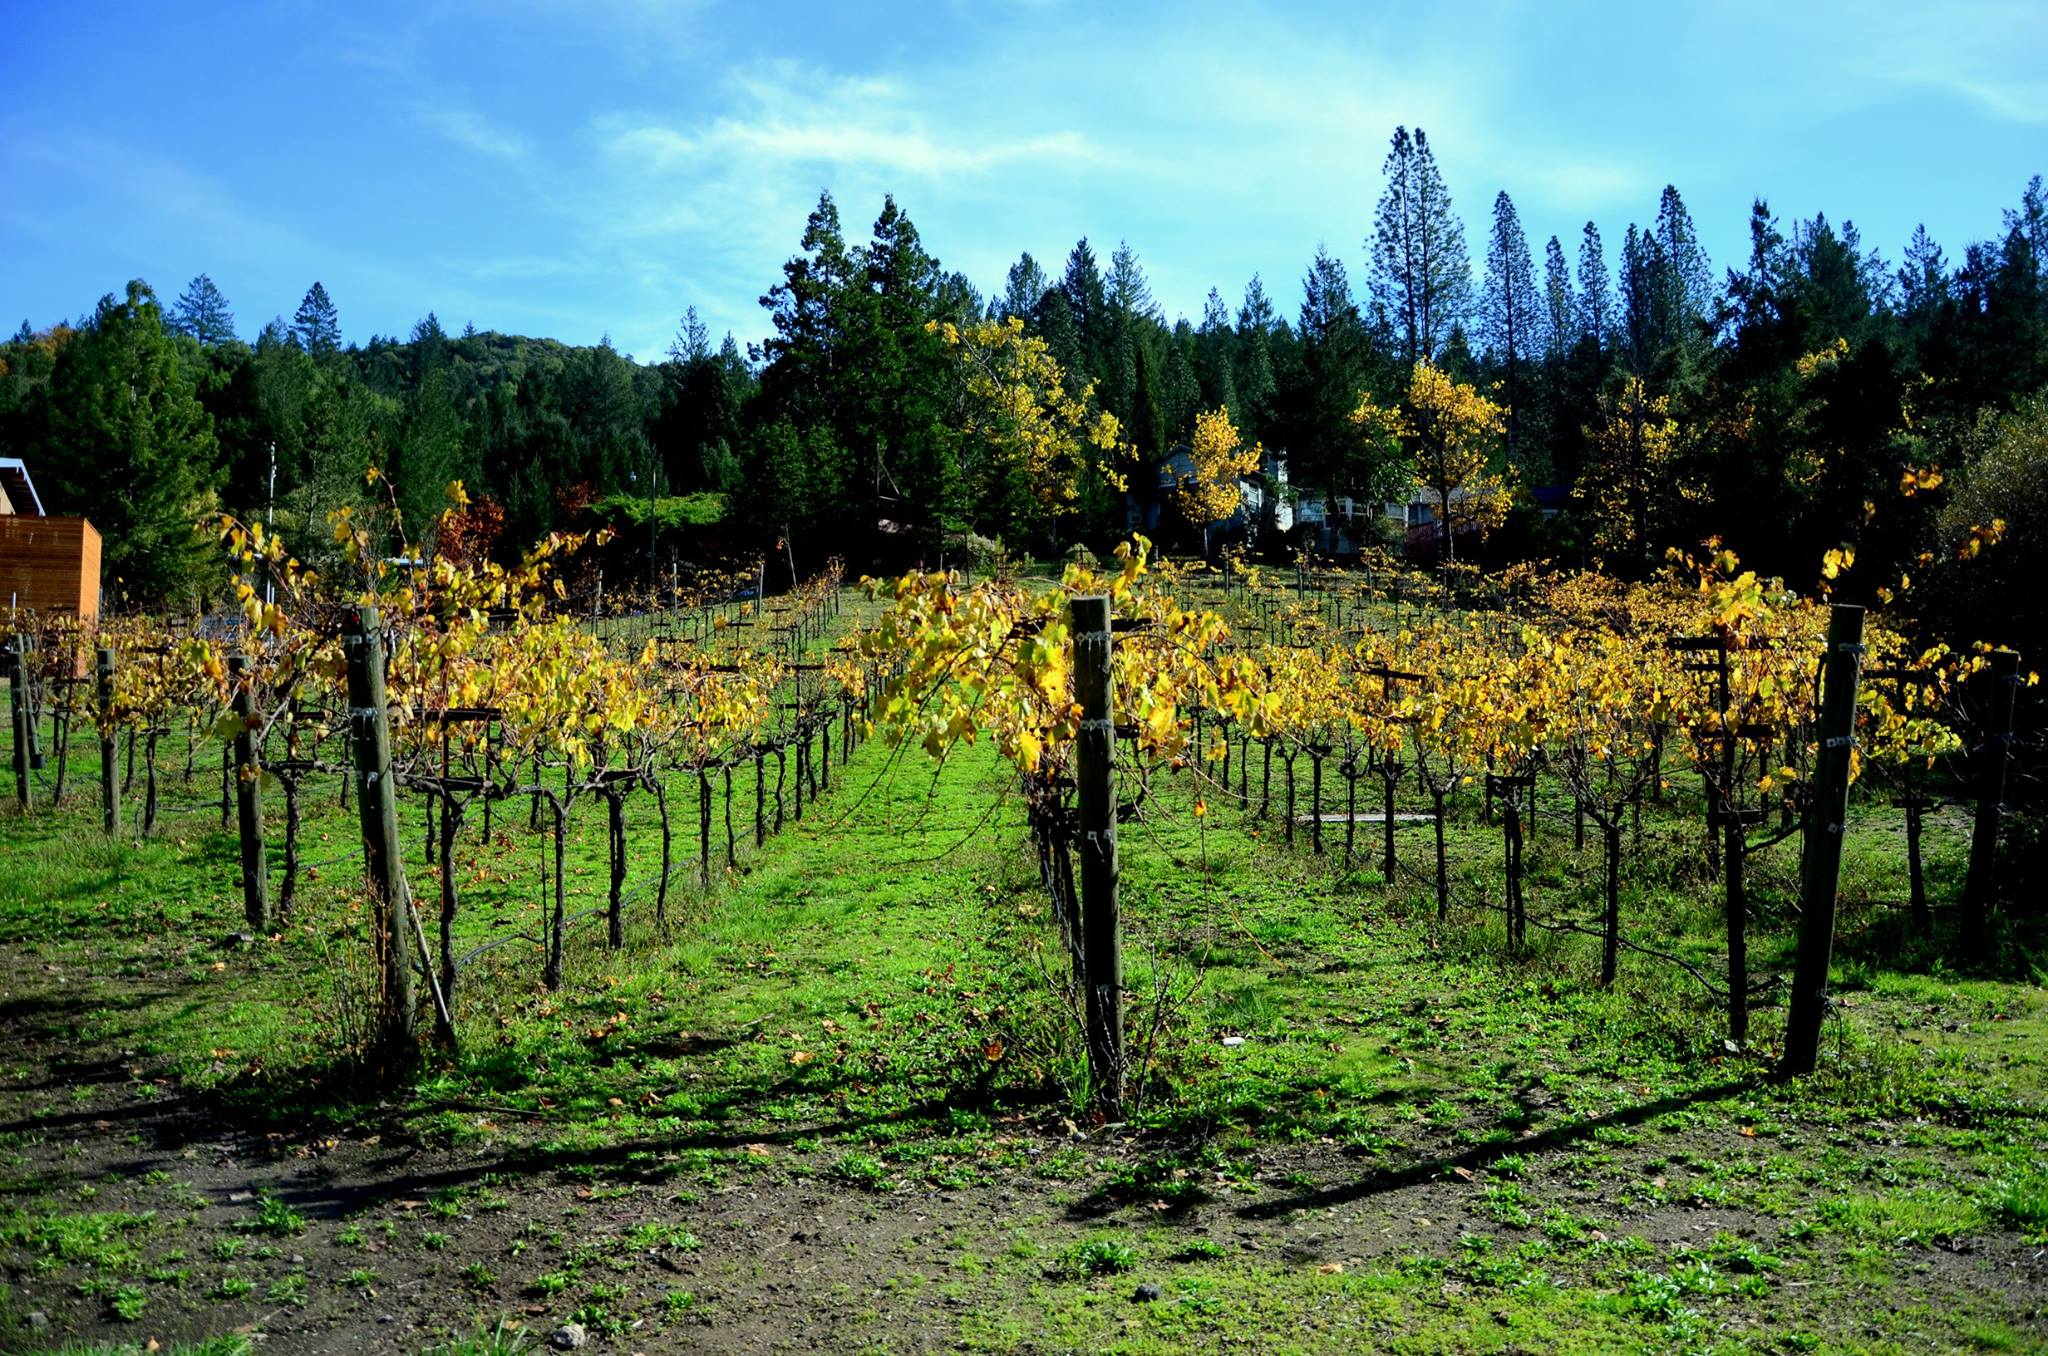 The camp's very own vineyard